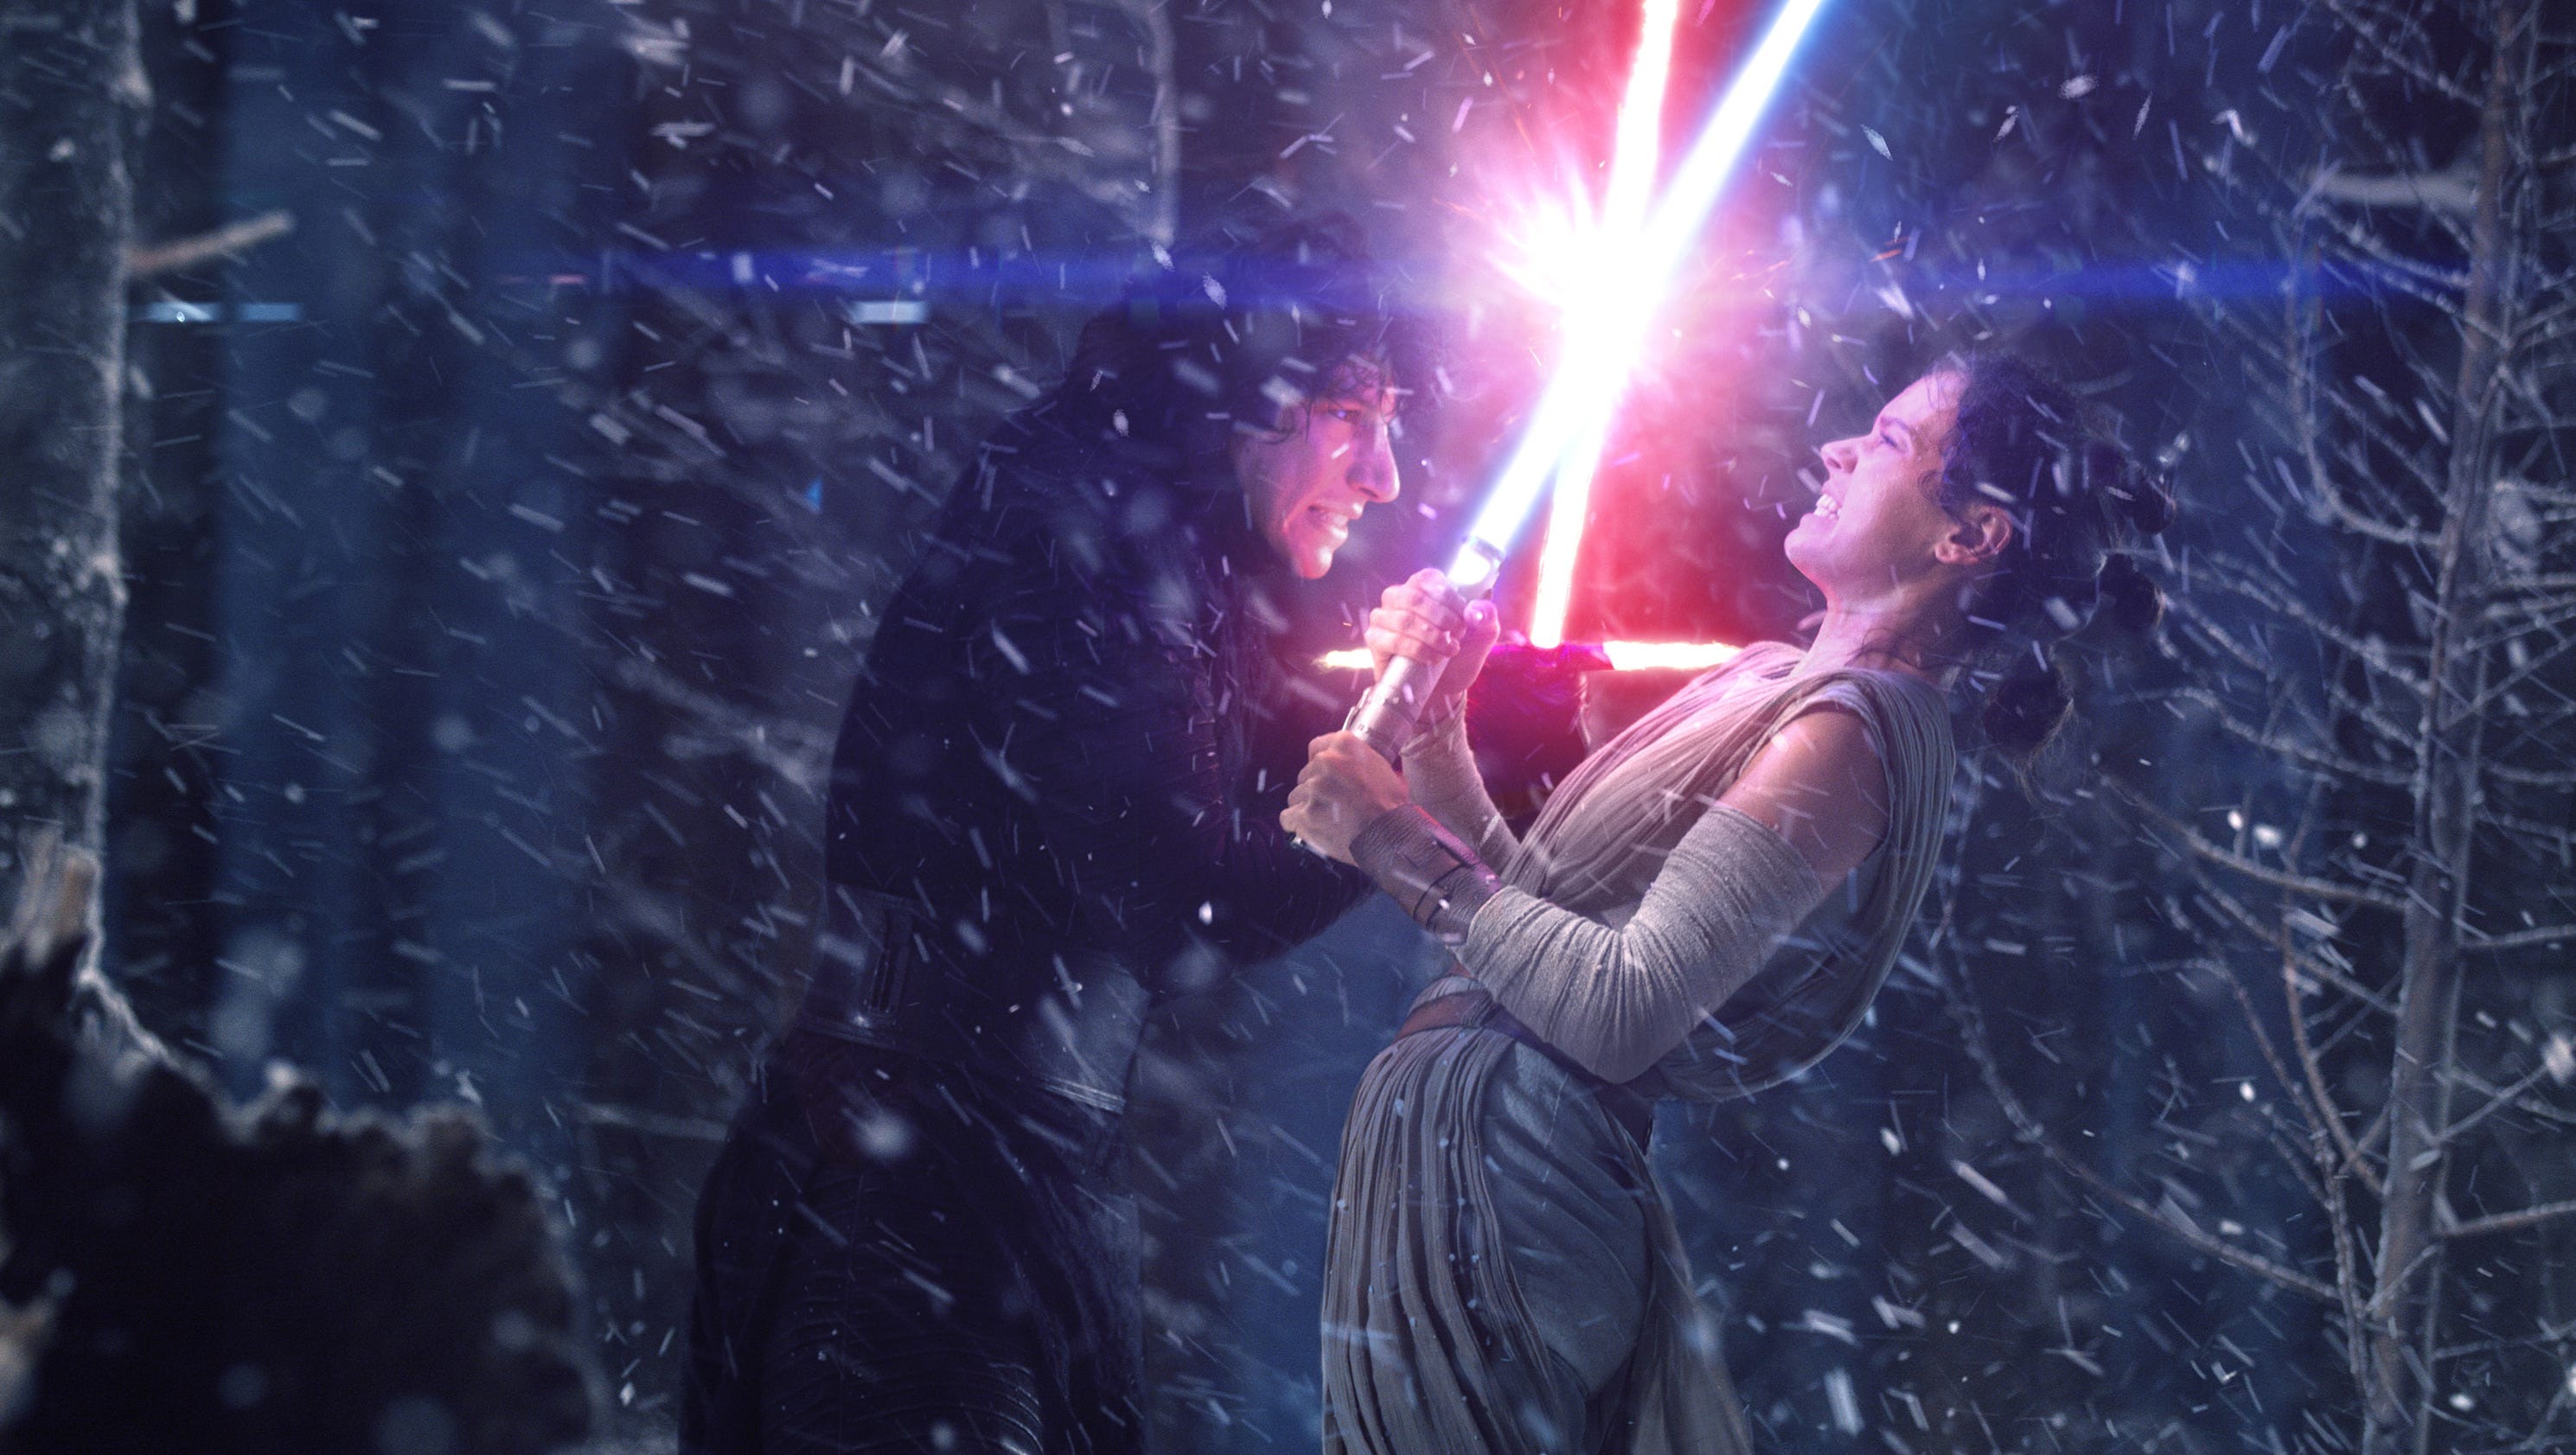 'Star Wars': What's going on with Kylo Ren and Rey in 'The Last Jedi'?